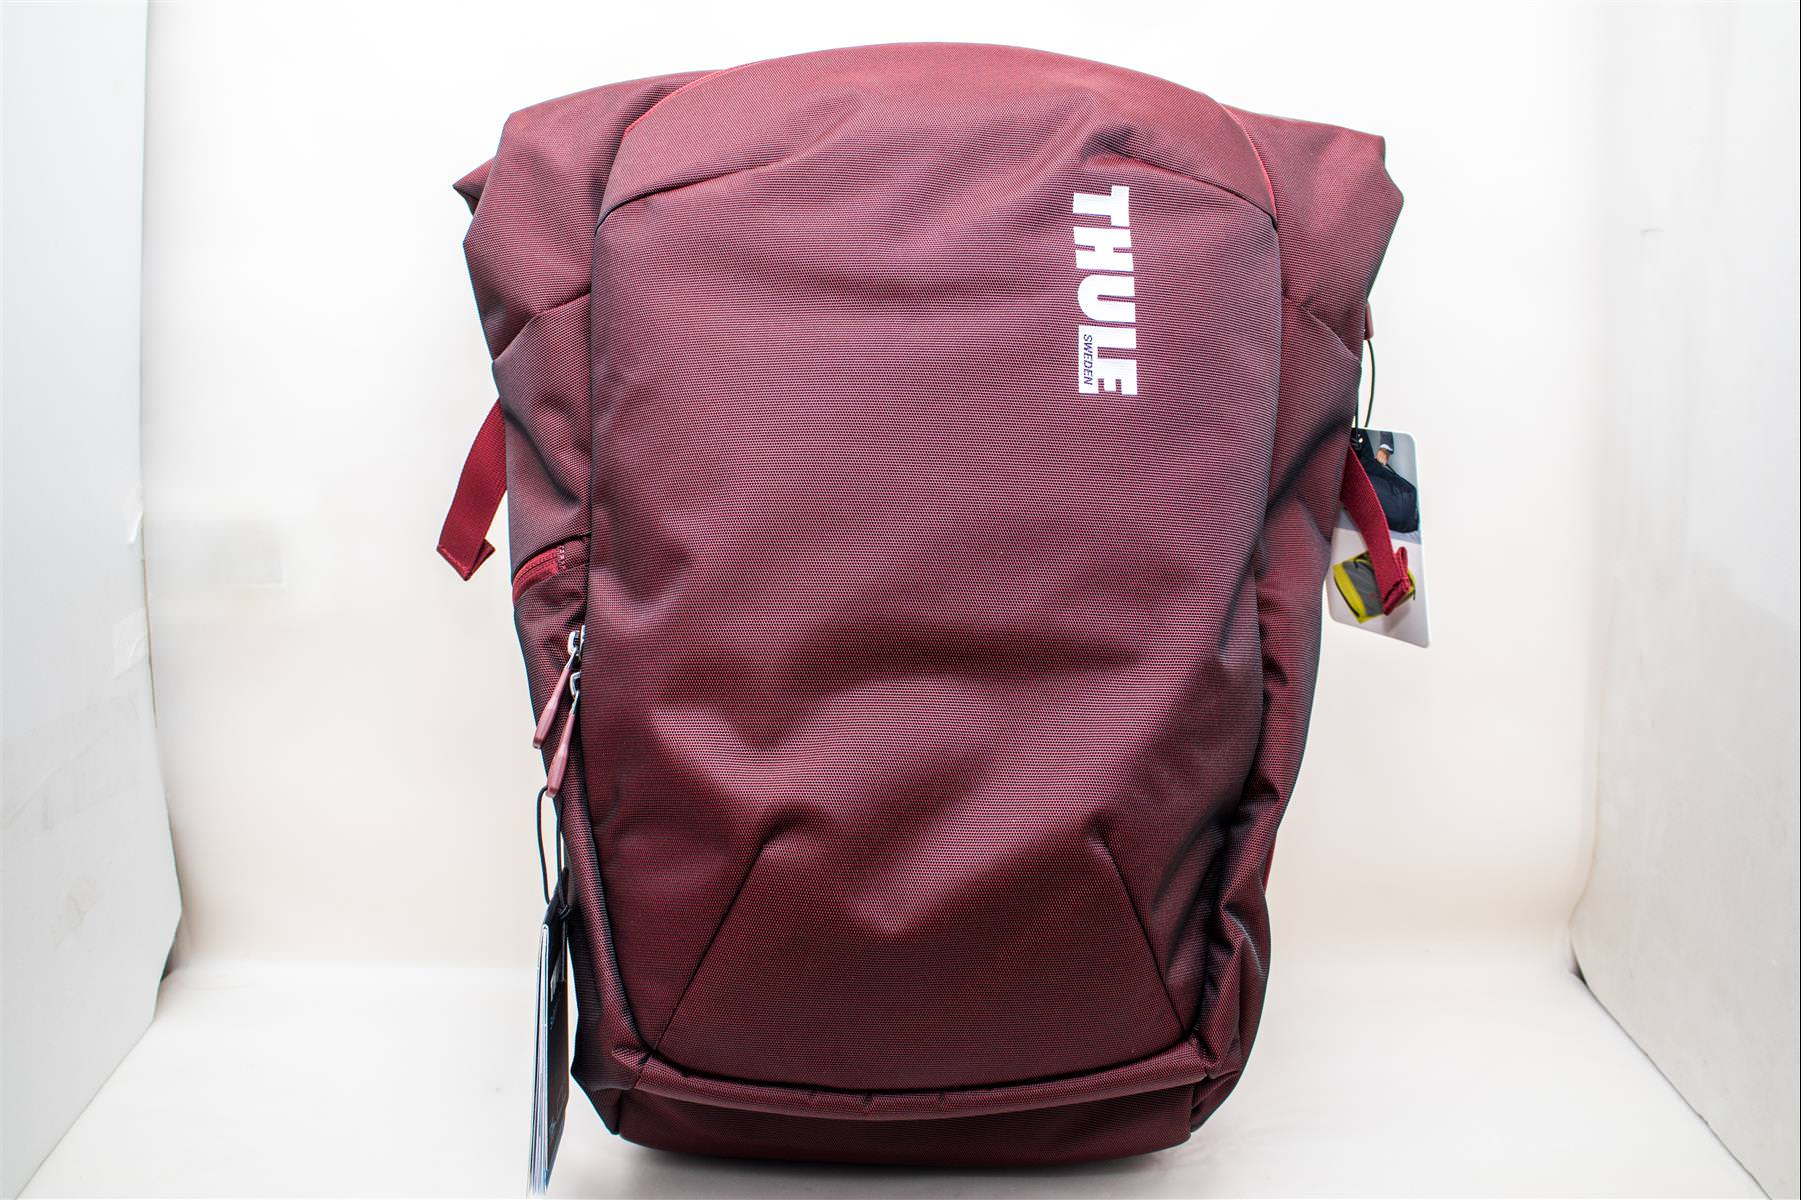 THULE Travel Backpack